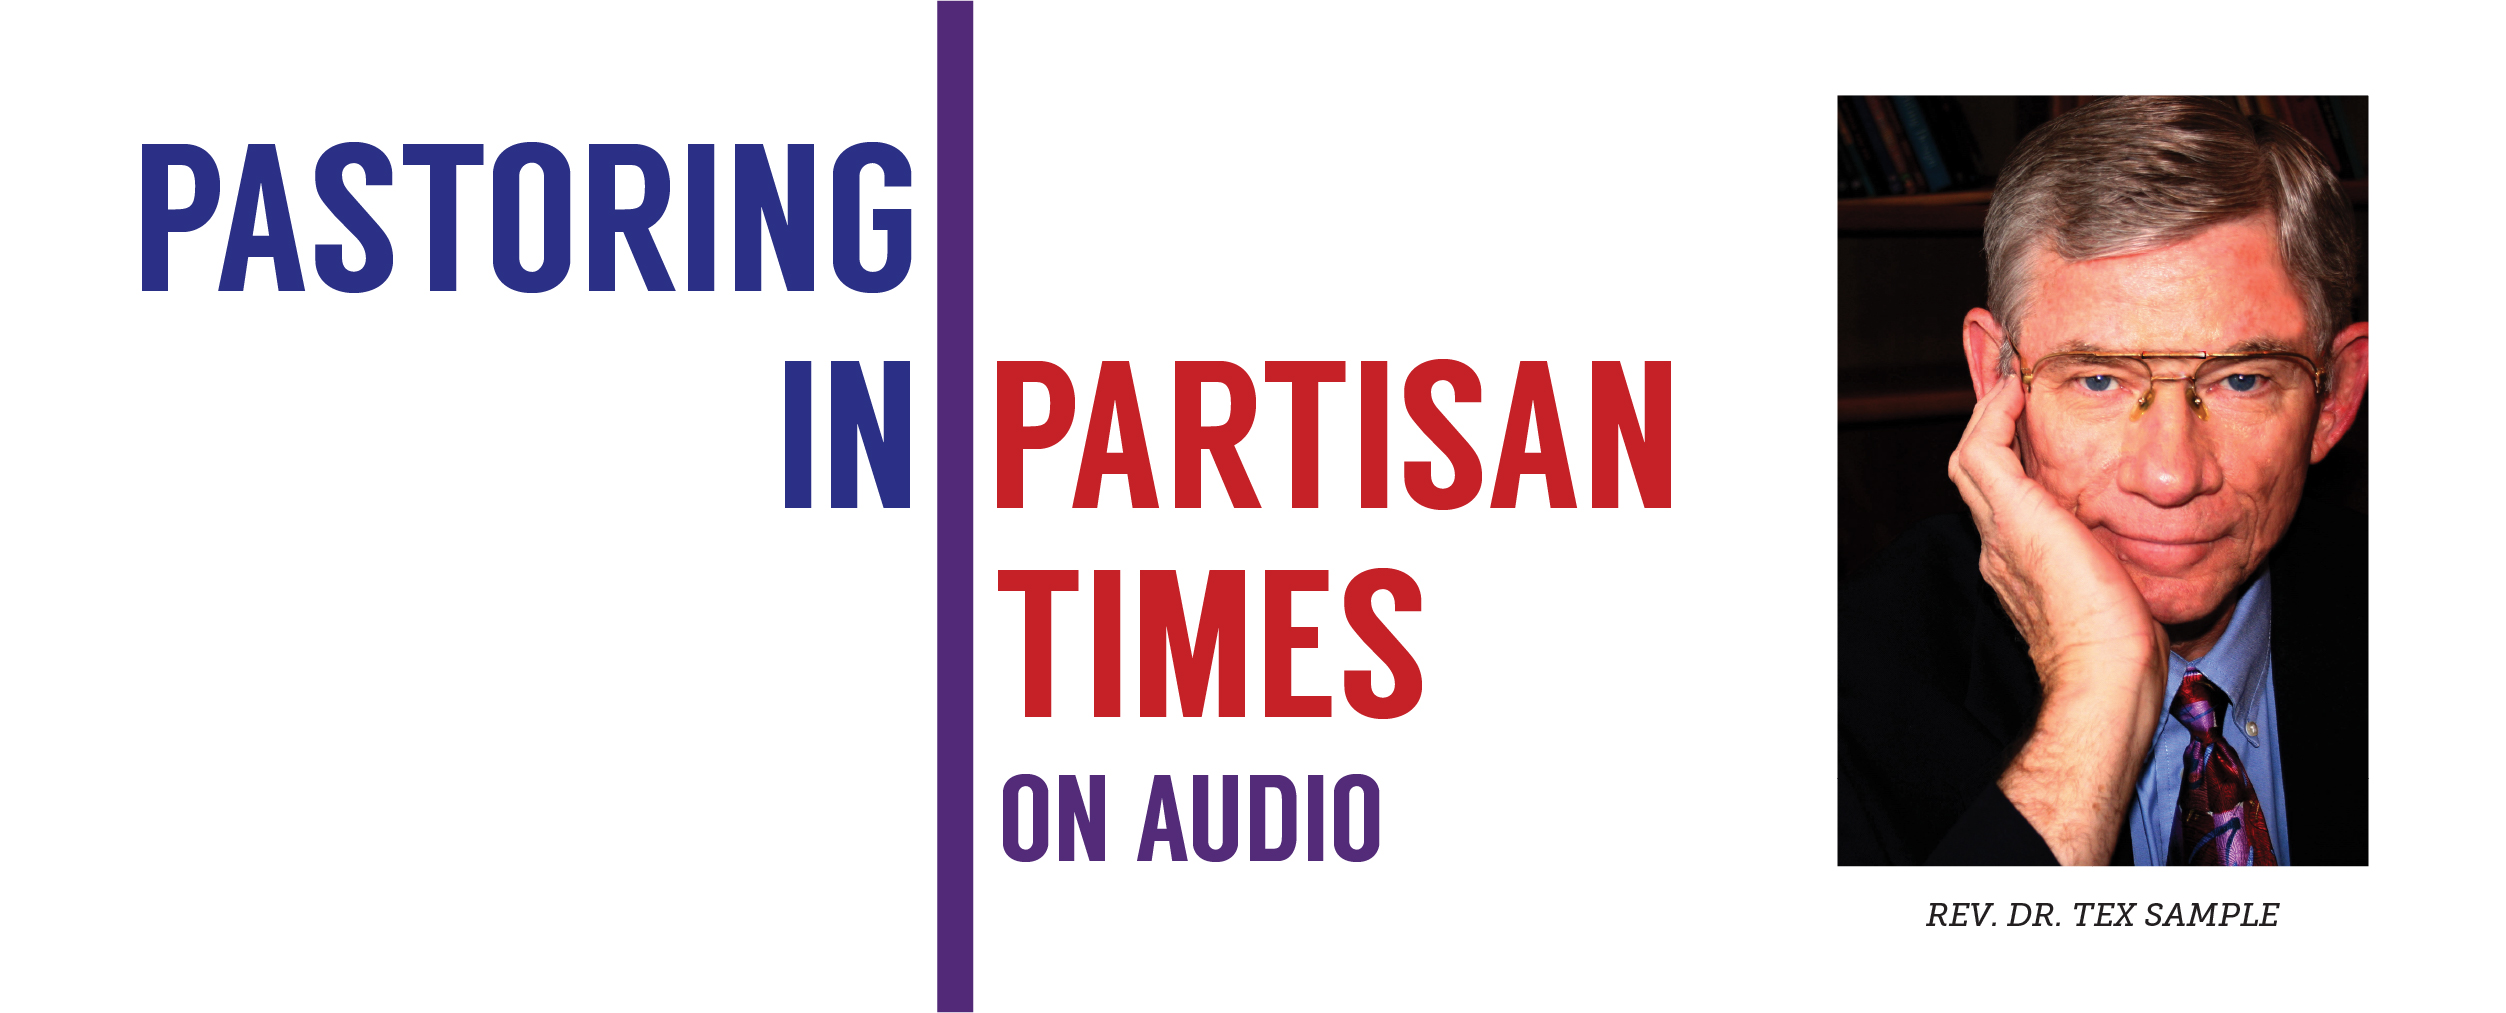 Pastoring in Partisan Times Podcast: Working Class Rage with Rev. Dr. Tex Sample